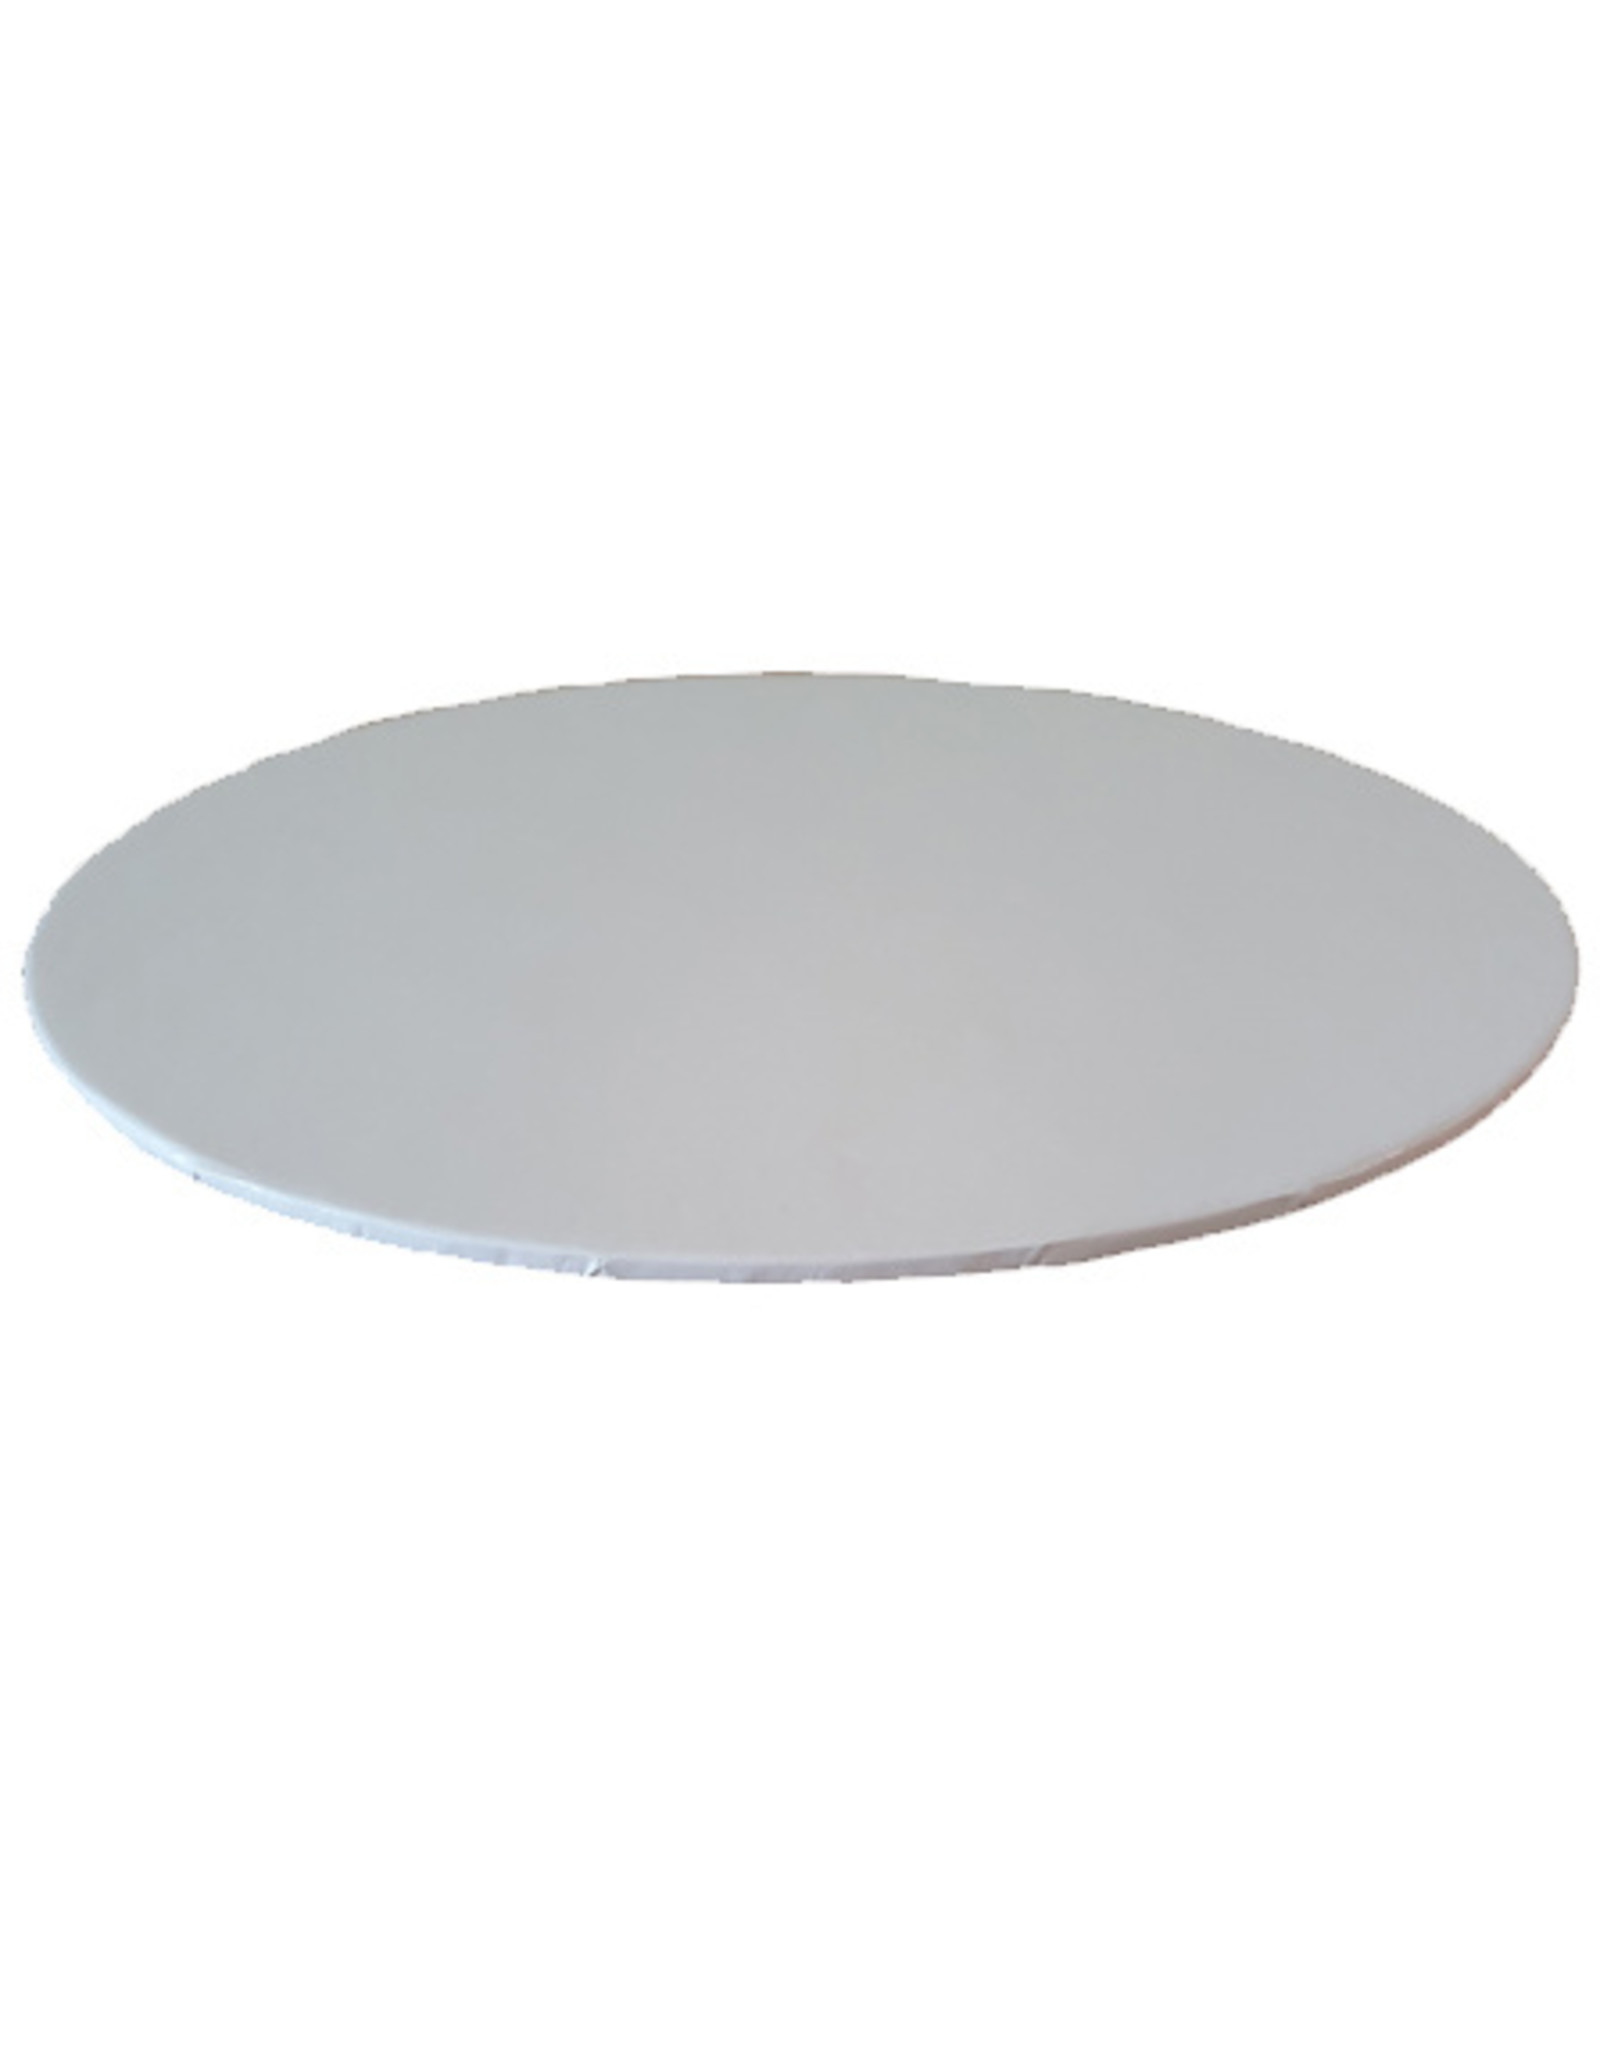 Cakeboards Ø203 mm - white (per 20 pieces)